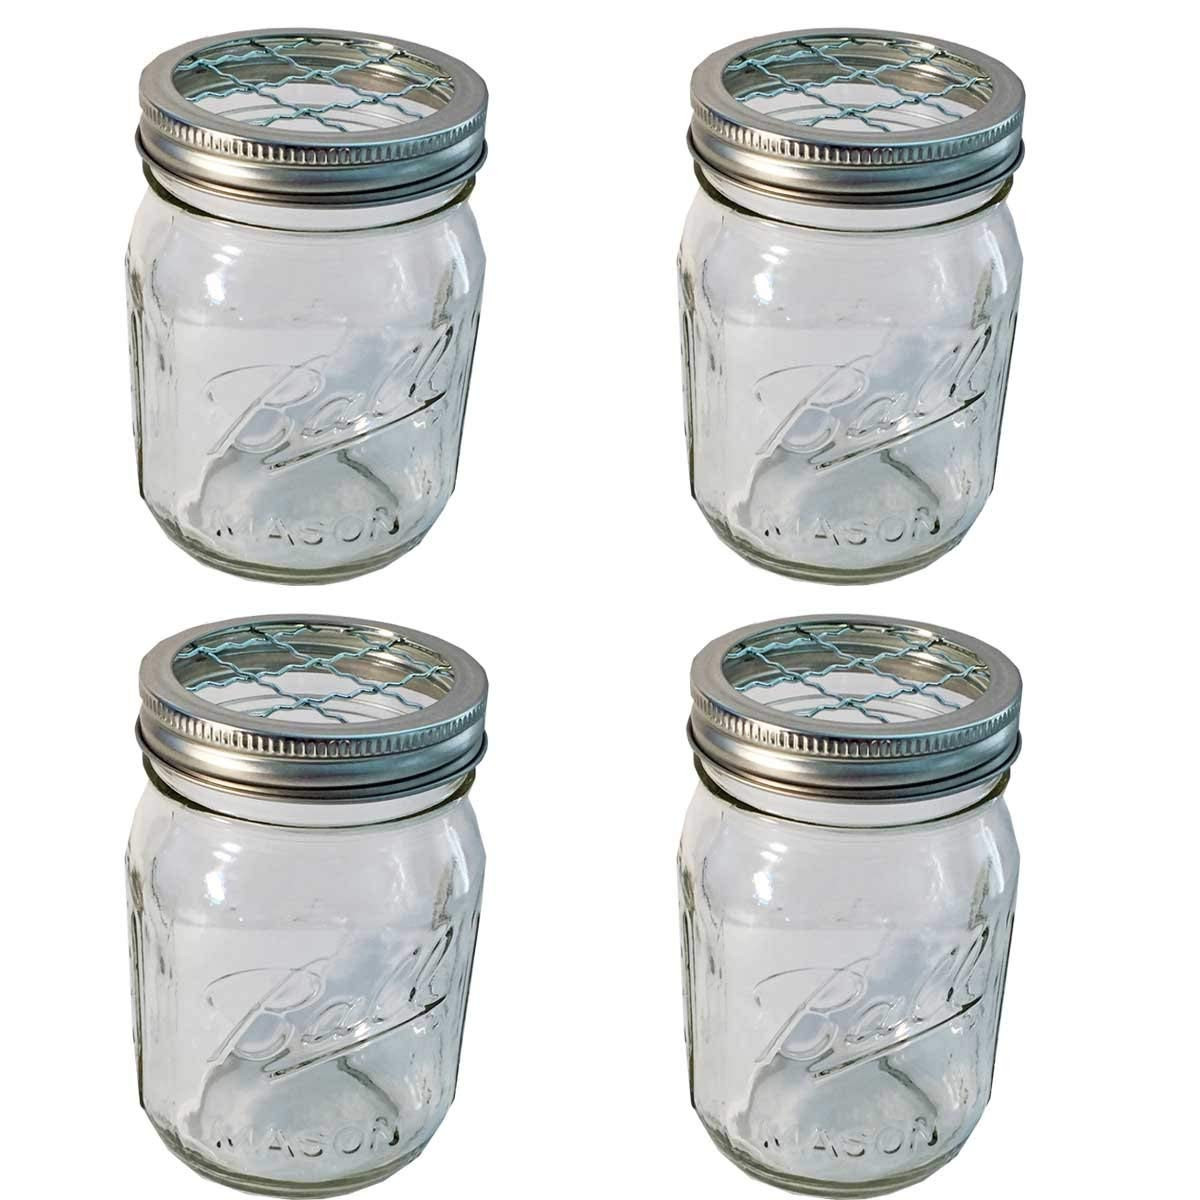 Mason Jar Vases with Ribbon Of Amazon Com 4 Mason Jars with 4 Frog Lid Inserts Regular Mouth Pint Intended for Amazon Com 4 Mason Jars with 4 Frog Lid Inserts Regular Mouth Pint 16 Oz Bundle Clear Kitchen Dining